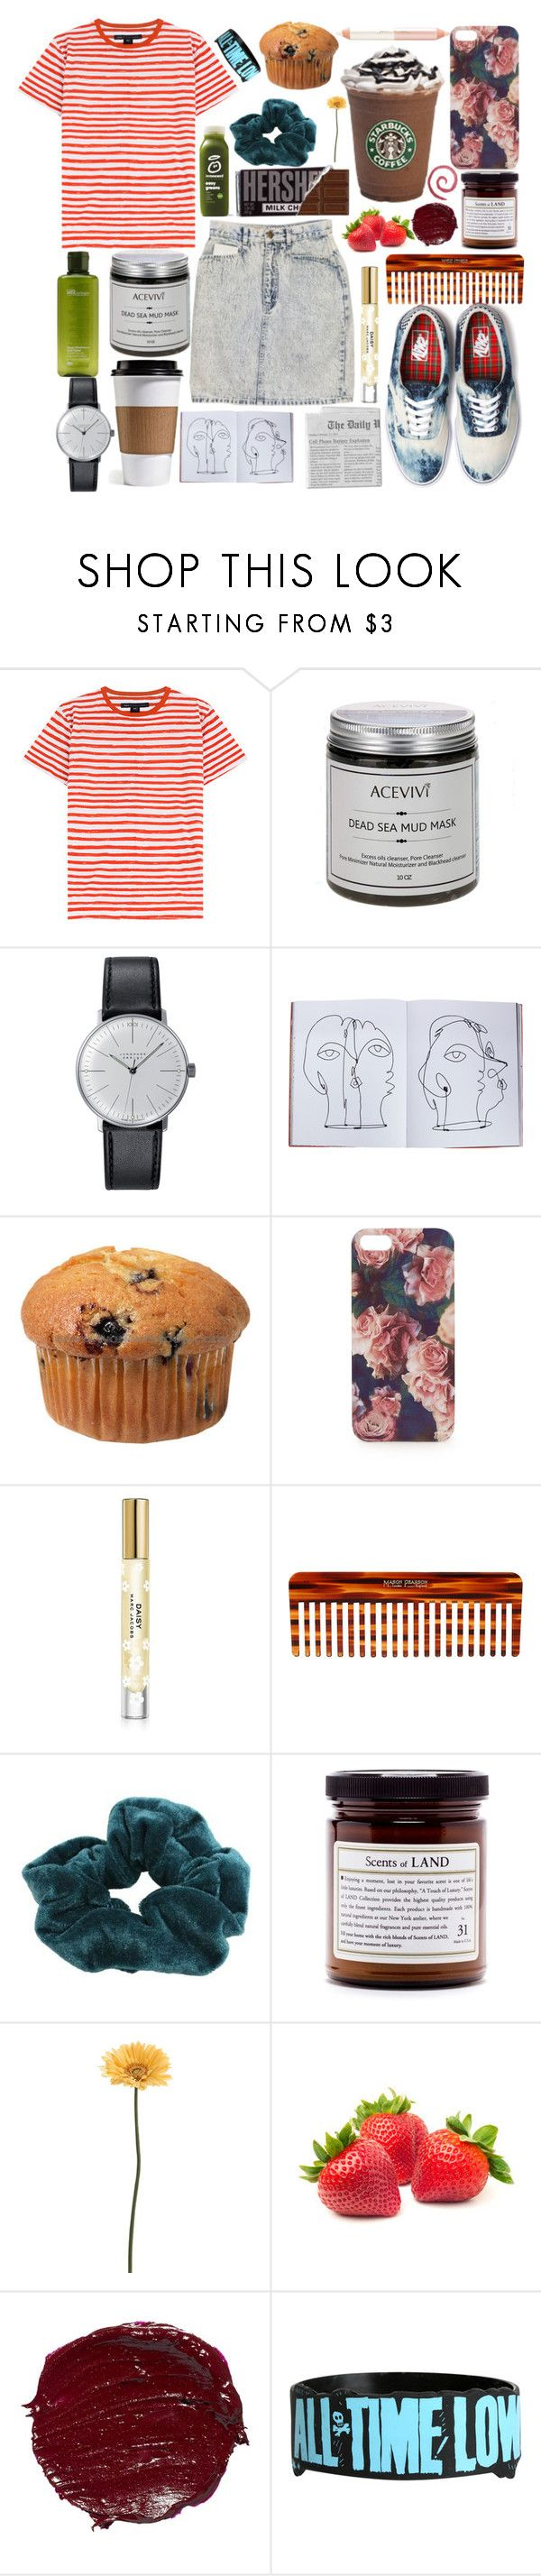 """the beach is for lovers not lonely hearts"" by paper-towns ❤ liked on Polyvore featuring Marc by Marc Jacobs, Vans, Origins, Junghans, Assouline Publishing, Topshop, Jane Iredale, Marc Jacobs, Mason Pearson and CO"